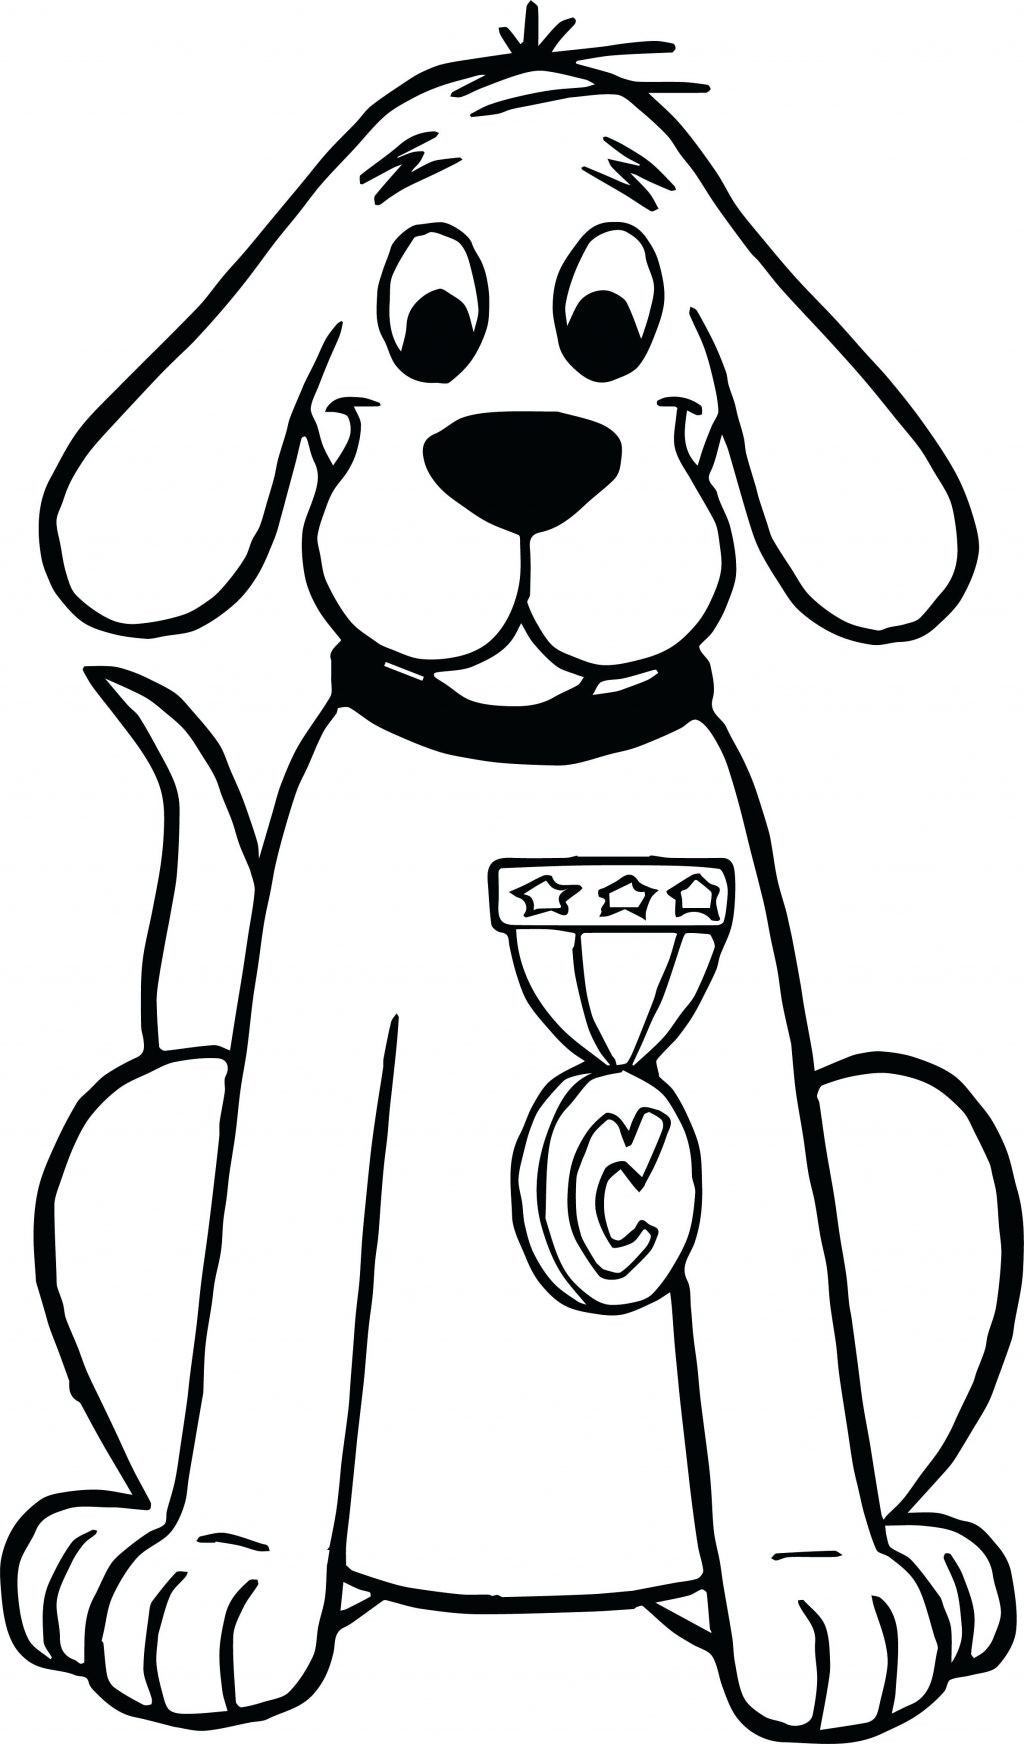 1024x1744 Highest Baby Clifford Coloring Pages Big Red Dog This